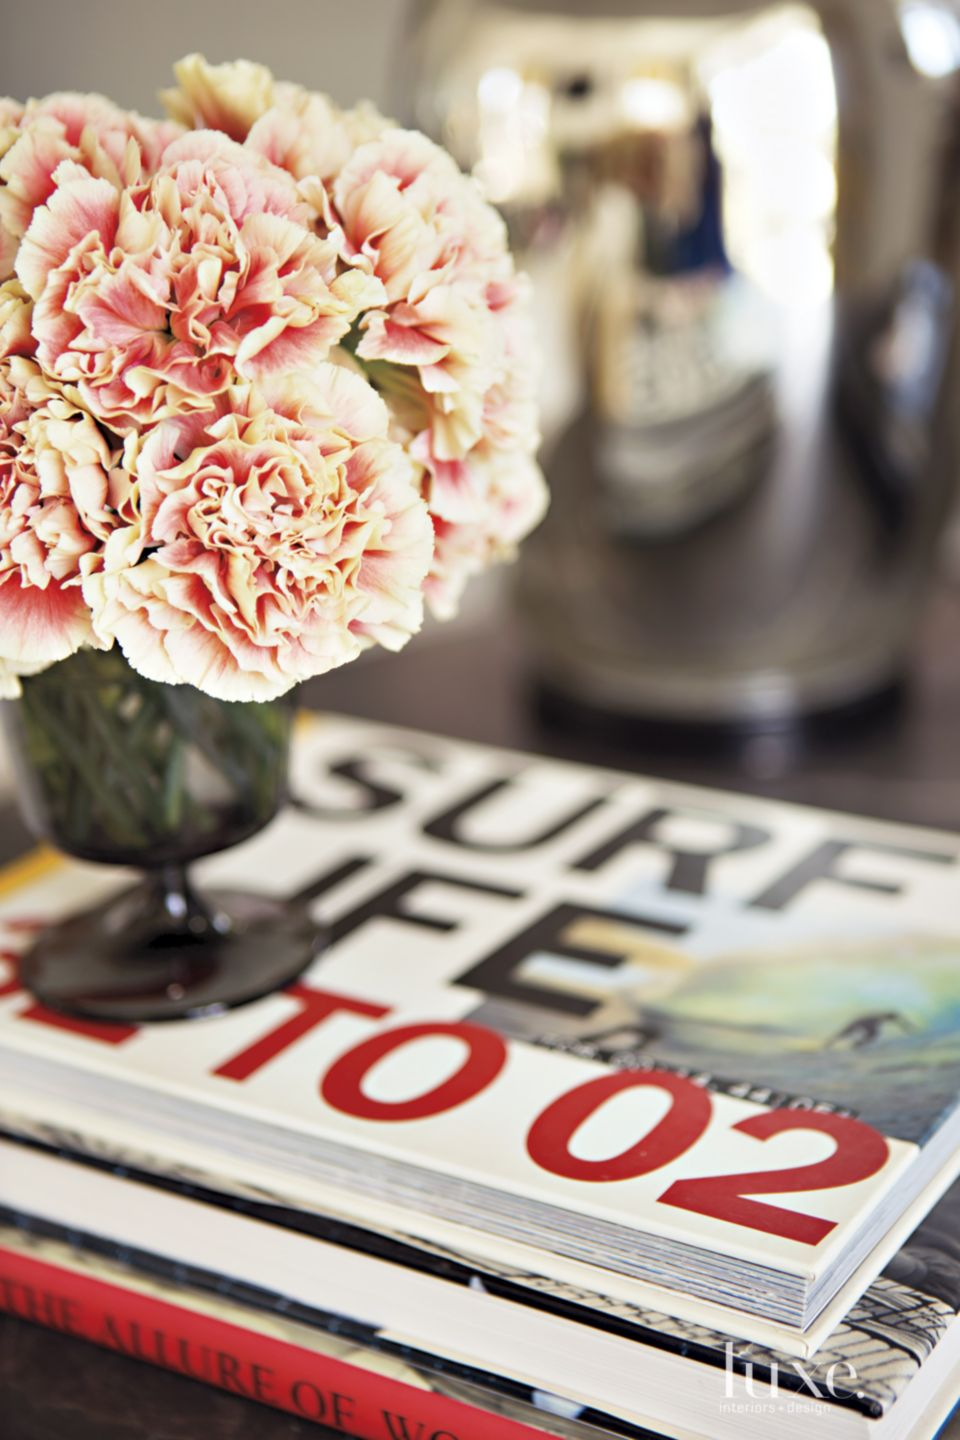 Living Room Coffee Table Books